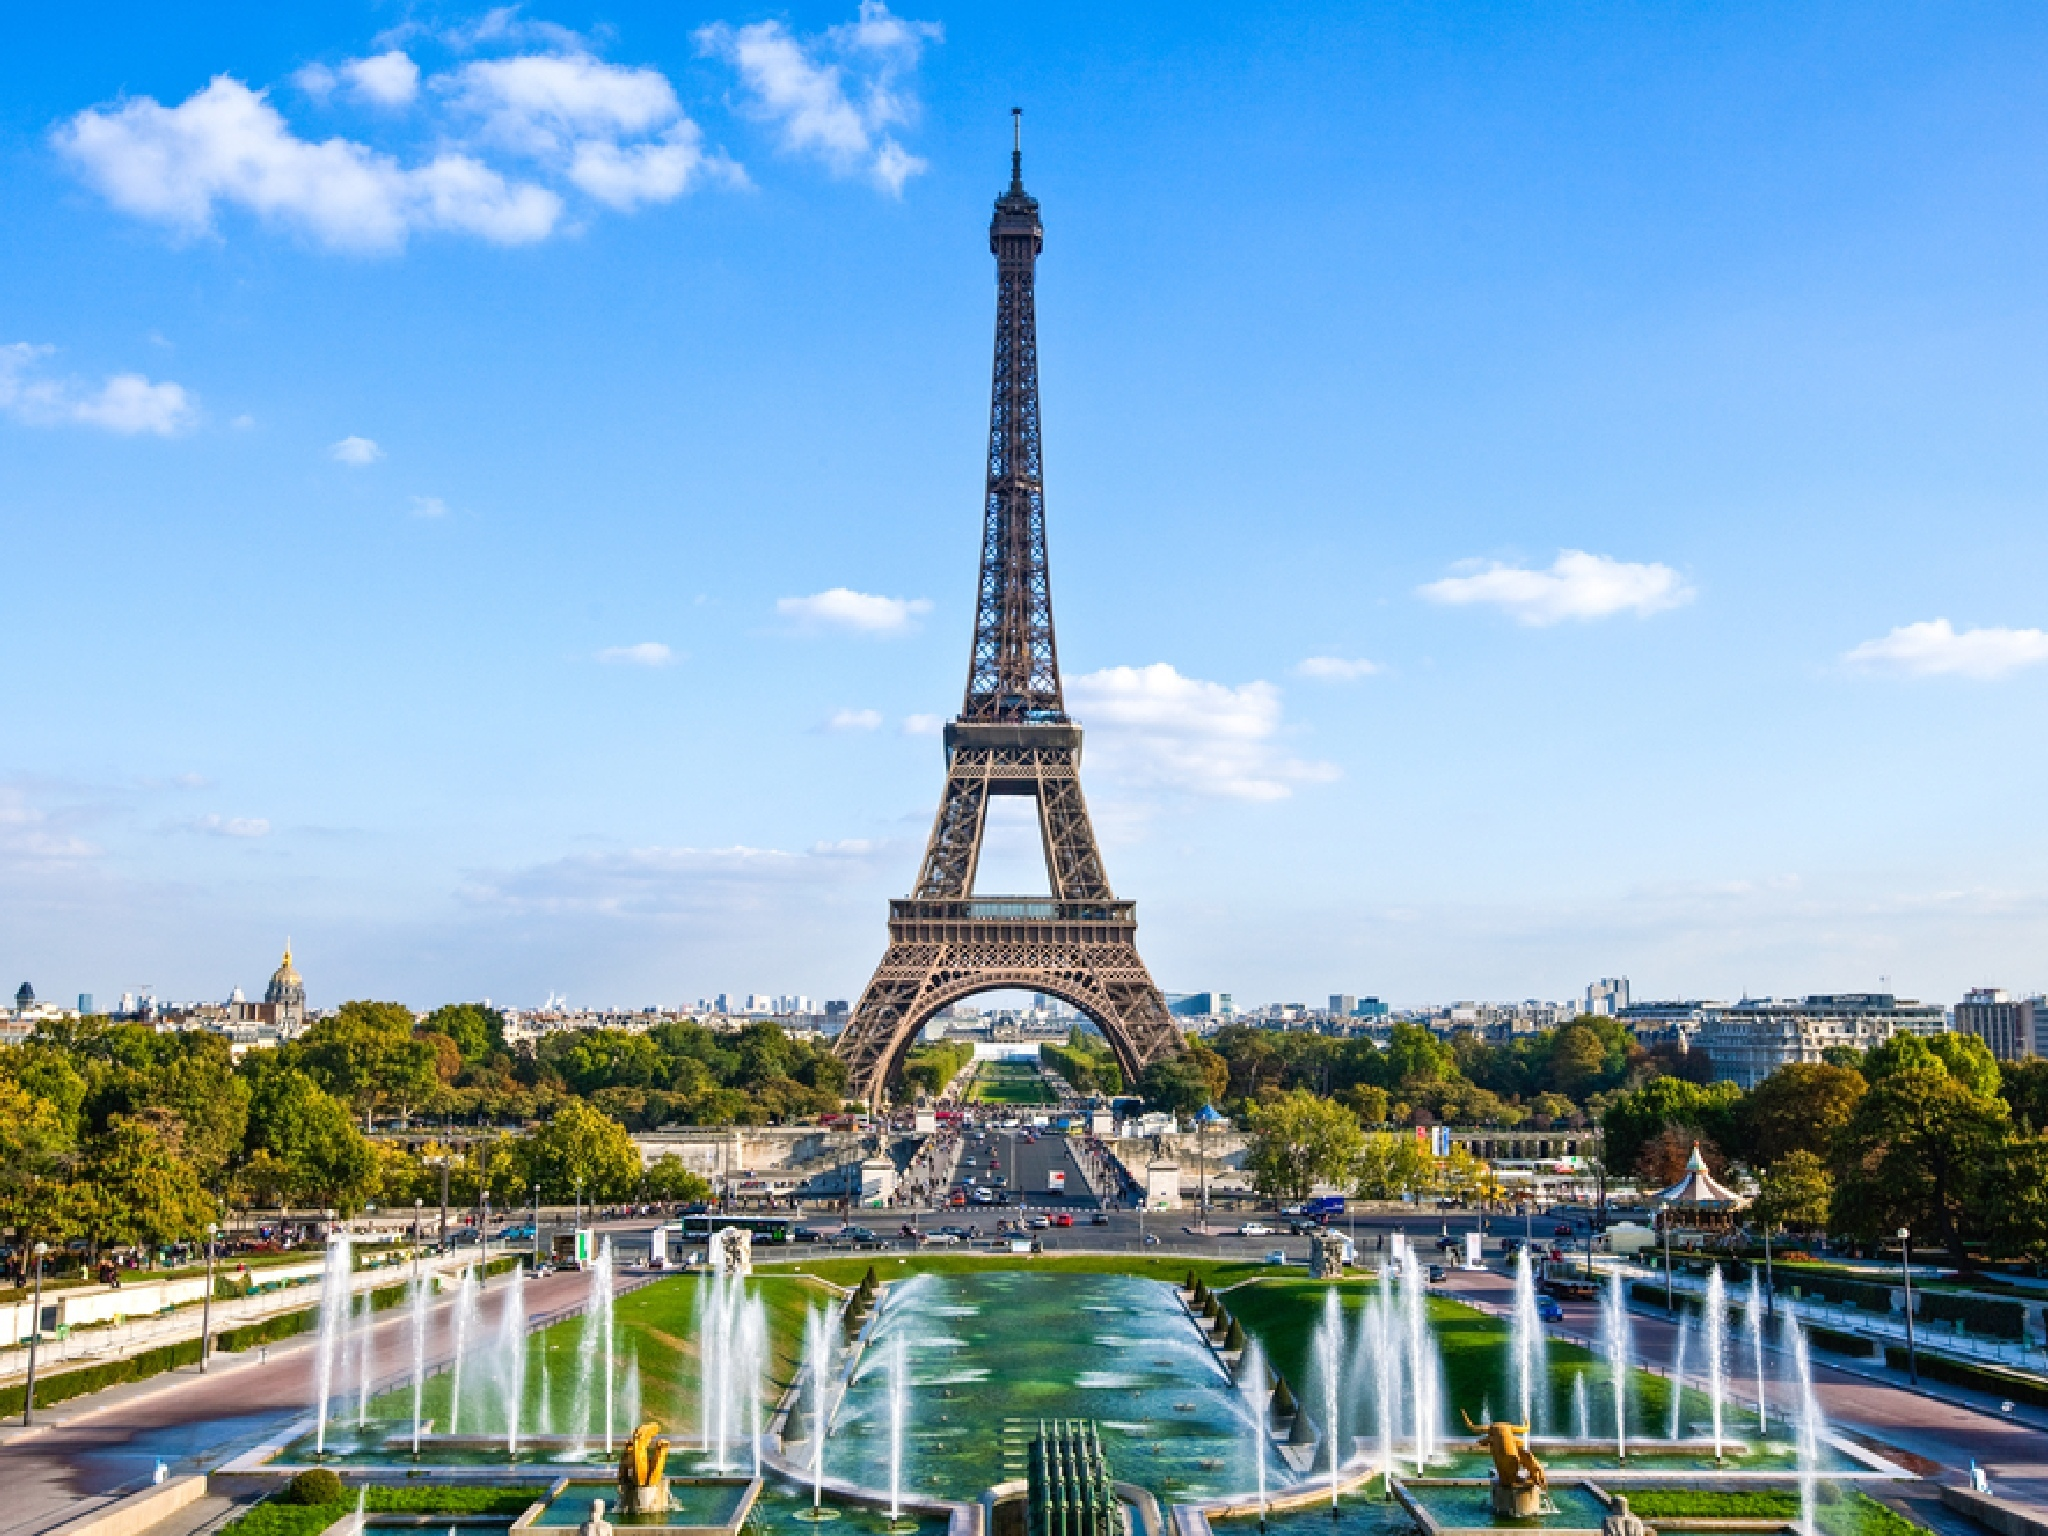 The Eiffel Tower is reopening today